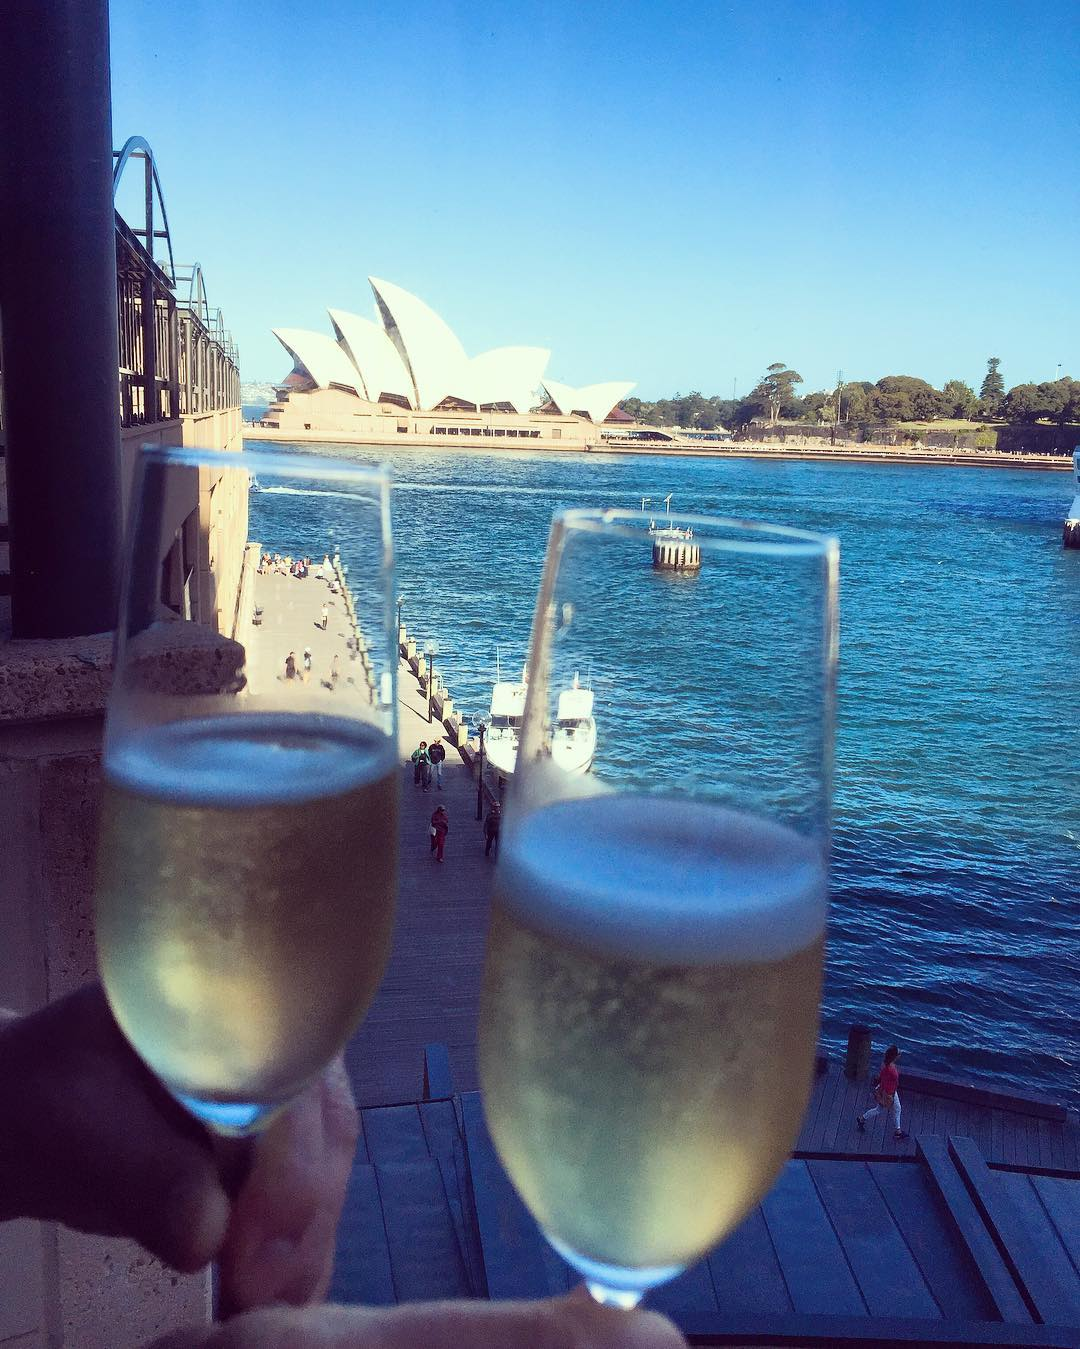 Cheers! Another day in Paradise! itravel Australia sydneyharbour livelovelaughfood